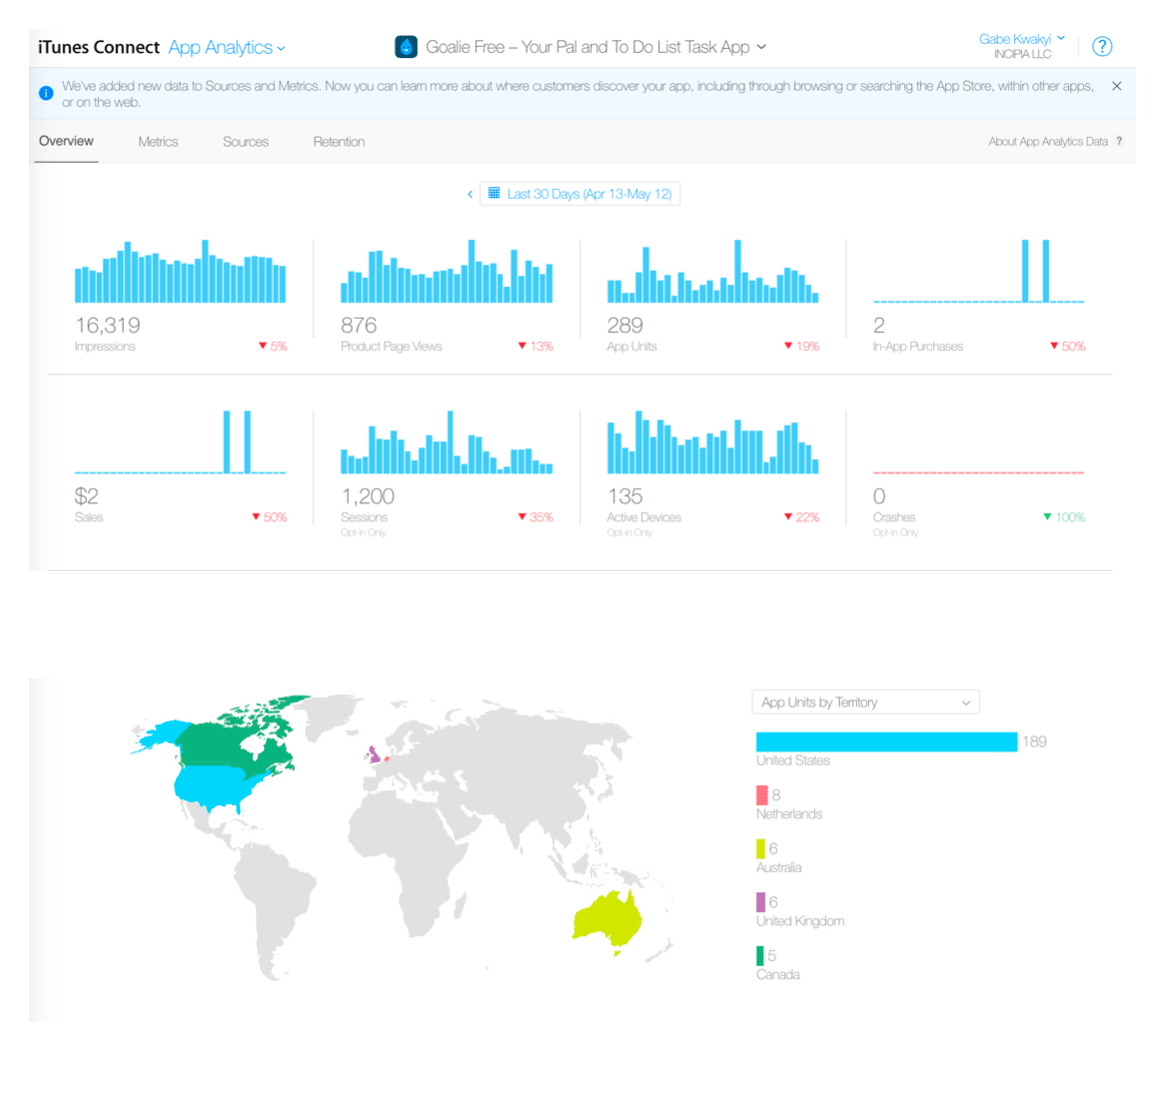 Screenshot of the iTunes Connect app analytics overview dashboard